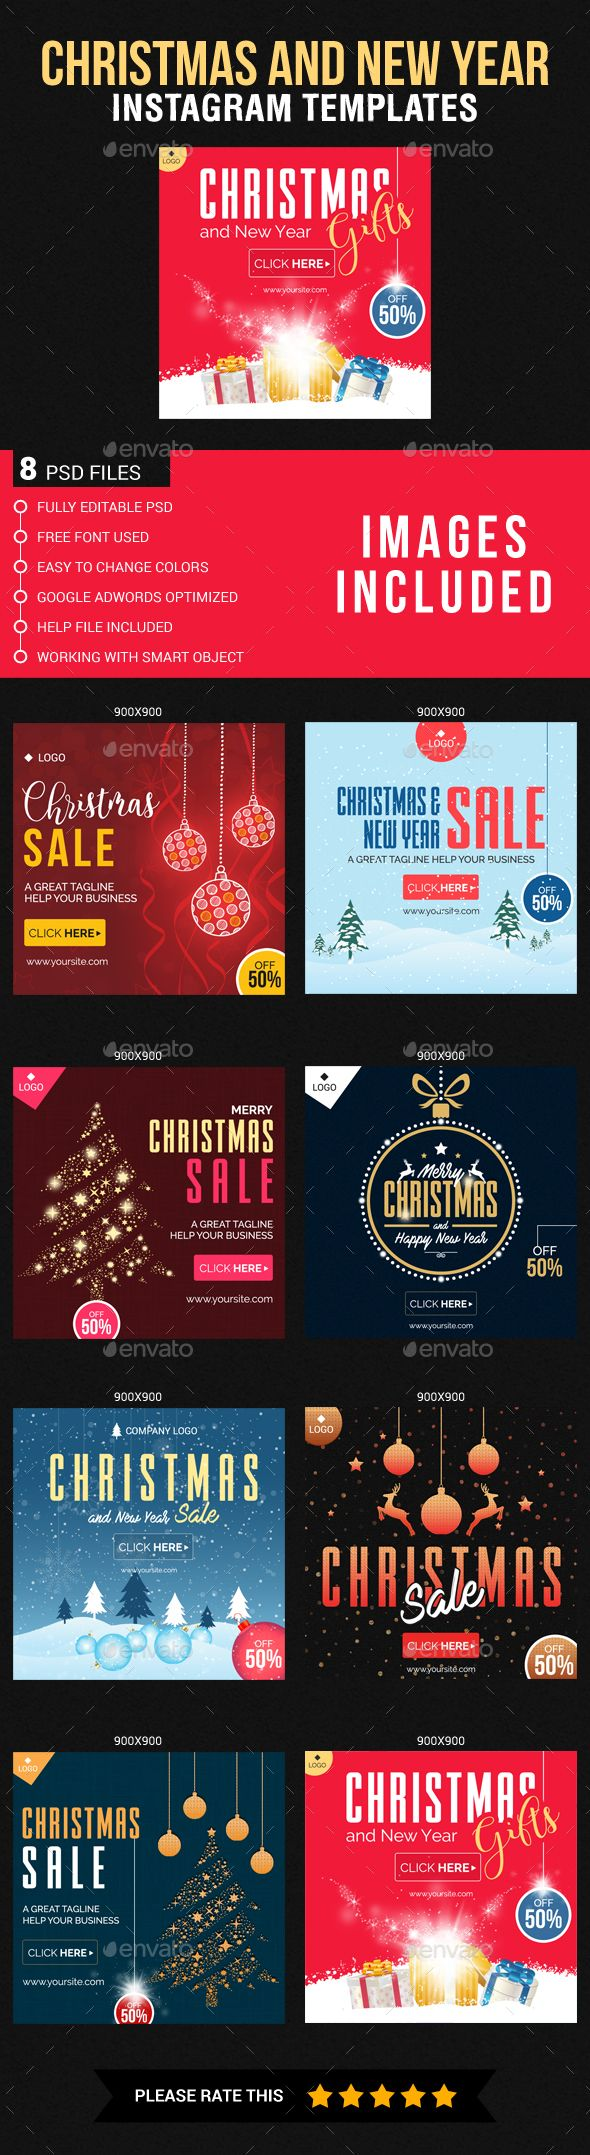 Christmas And New Year Instagram Templates Instagram Template Instagram Banner Christmas And New Year